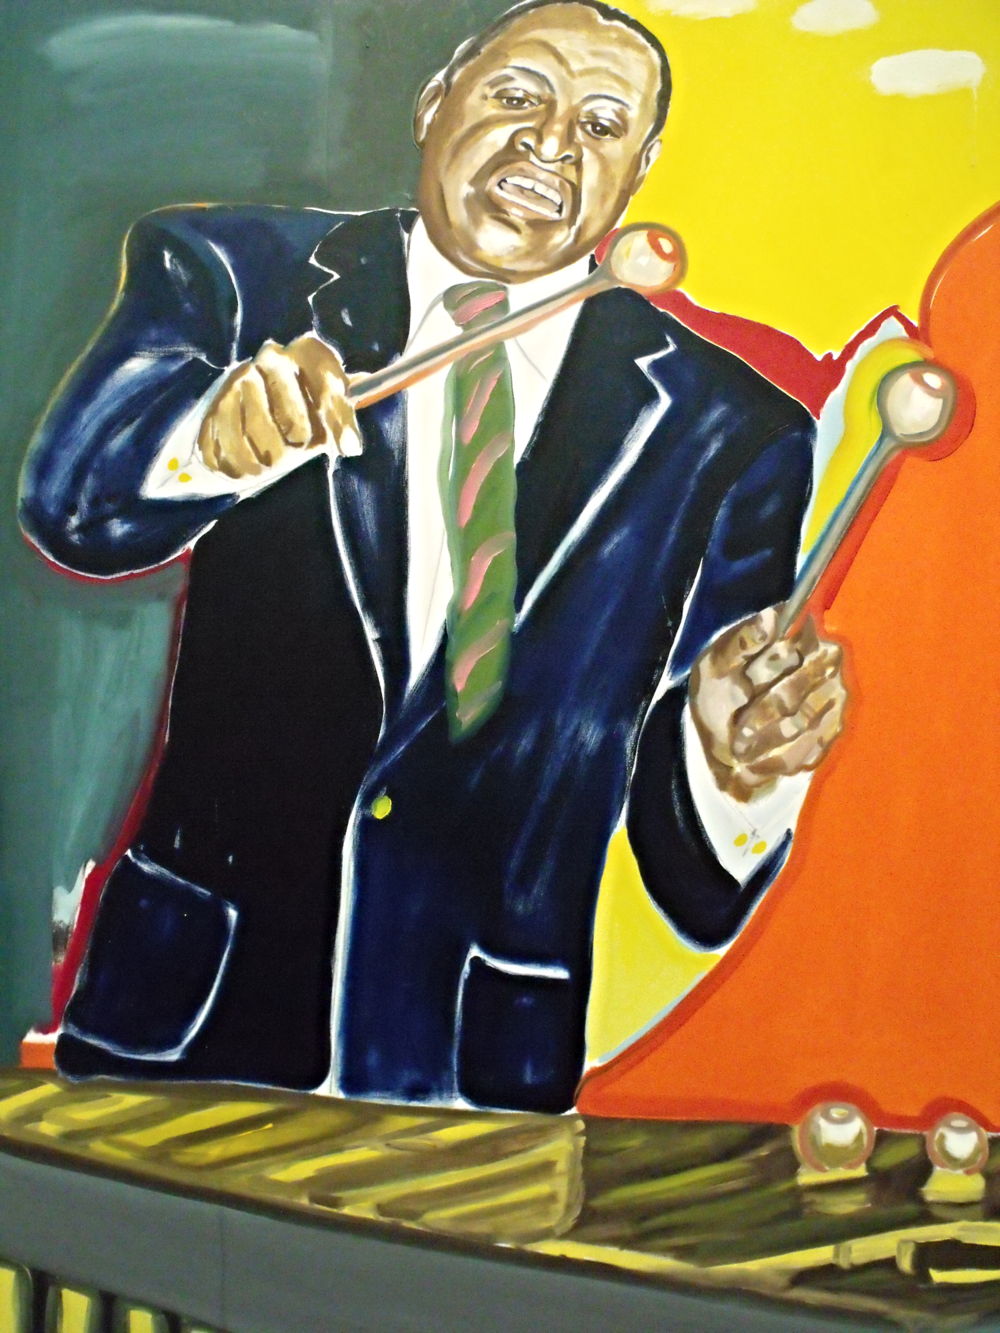 """This enormous portrait of Lionel Hampton by Frederick J. Brown is 96 & 1/8"""" tall. That's over 8 feet!  Lionel Hampton began his musical career as a drummer until Louis Armstrong encouraged him to take up the vibraphone in the early 1930s. Hampton introduced that instrument to the jazz idiom. Hampton's high-energy spontaneity was legendary: """"We got no routine,"""" he once said. """"We just act the way the spirit moves us."""""""